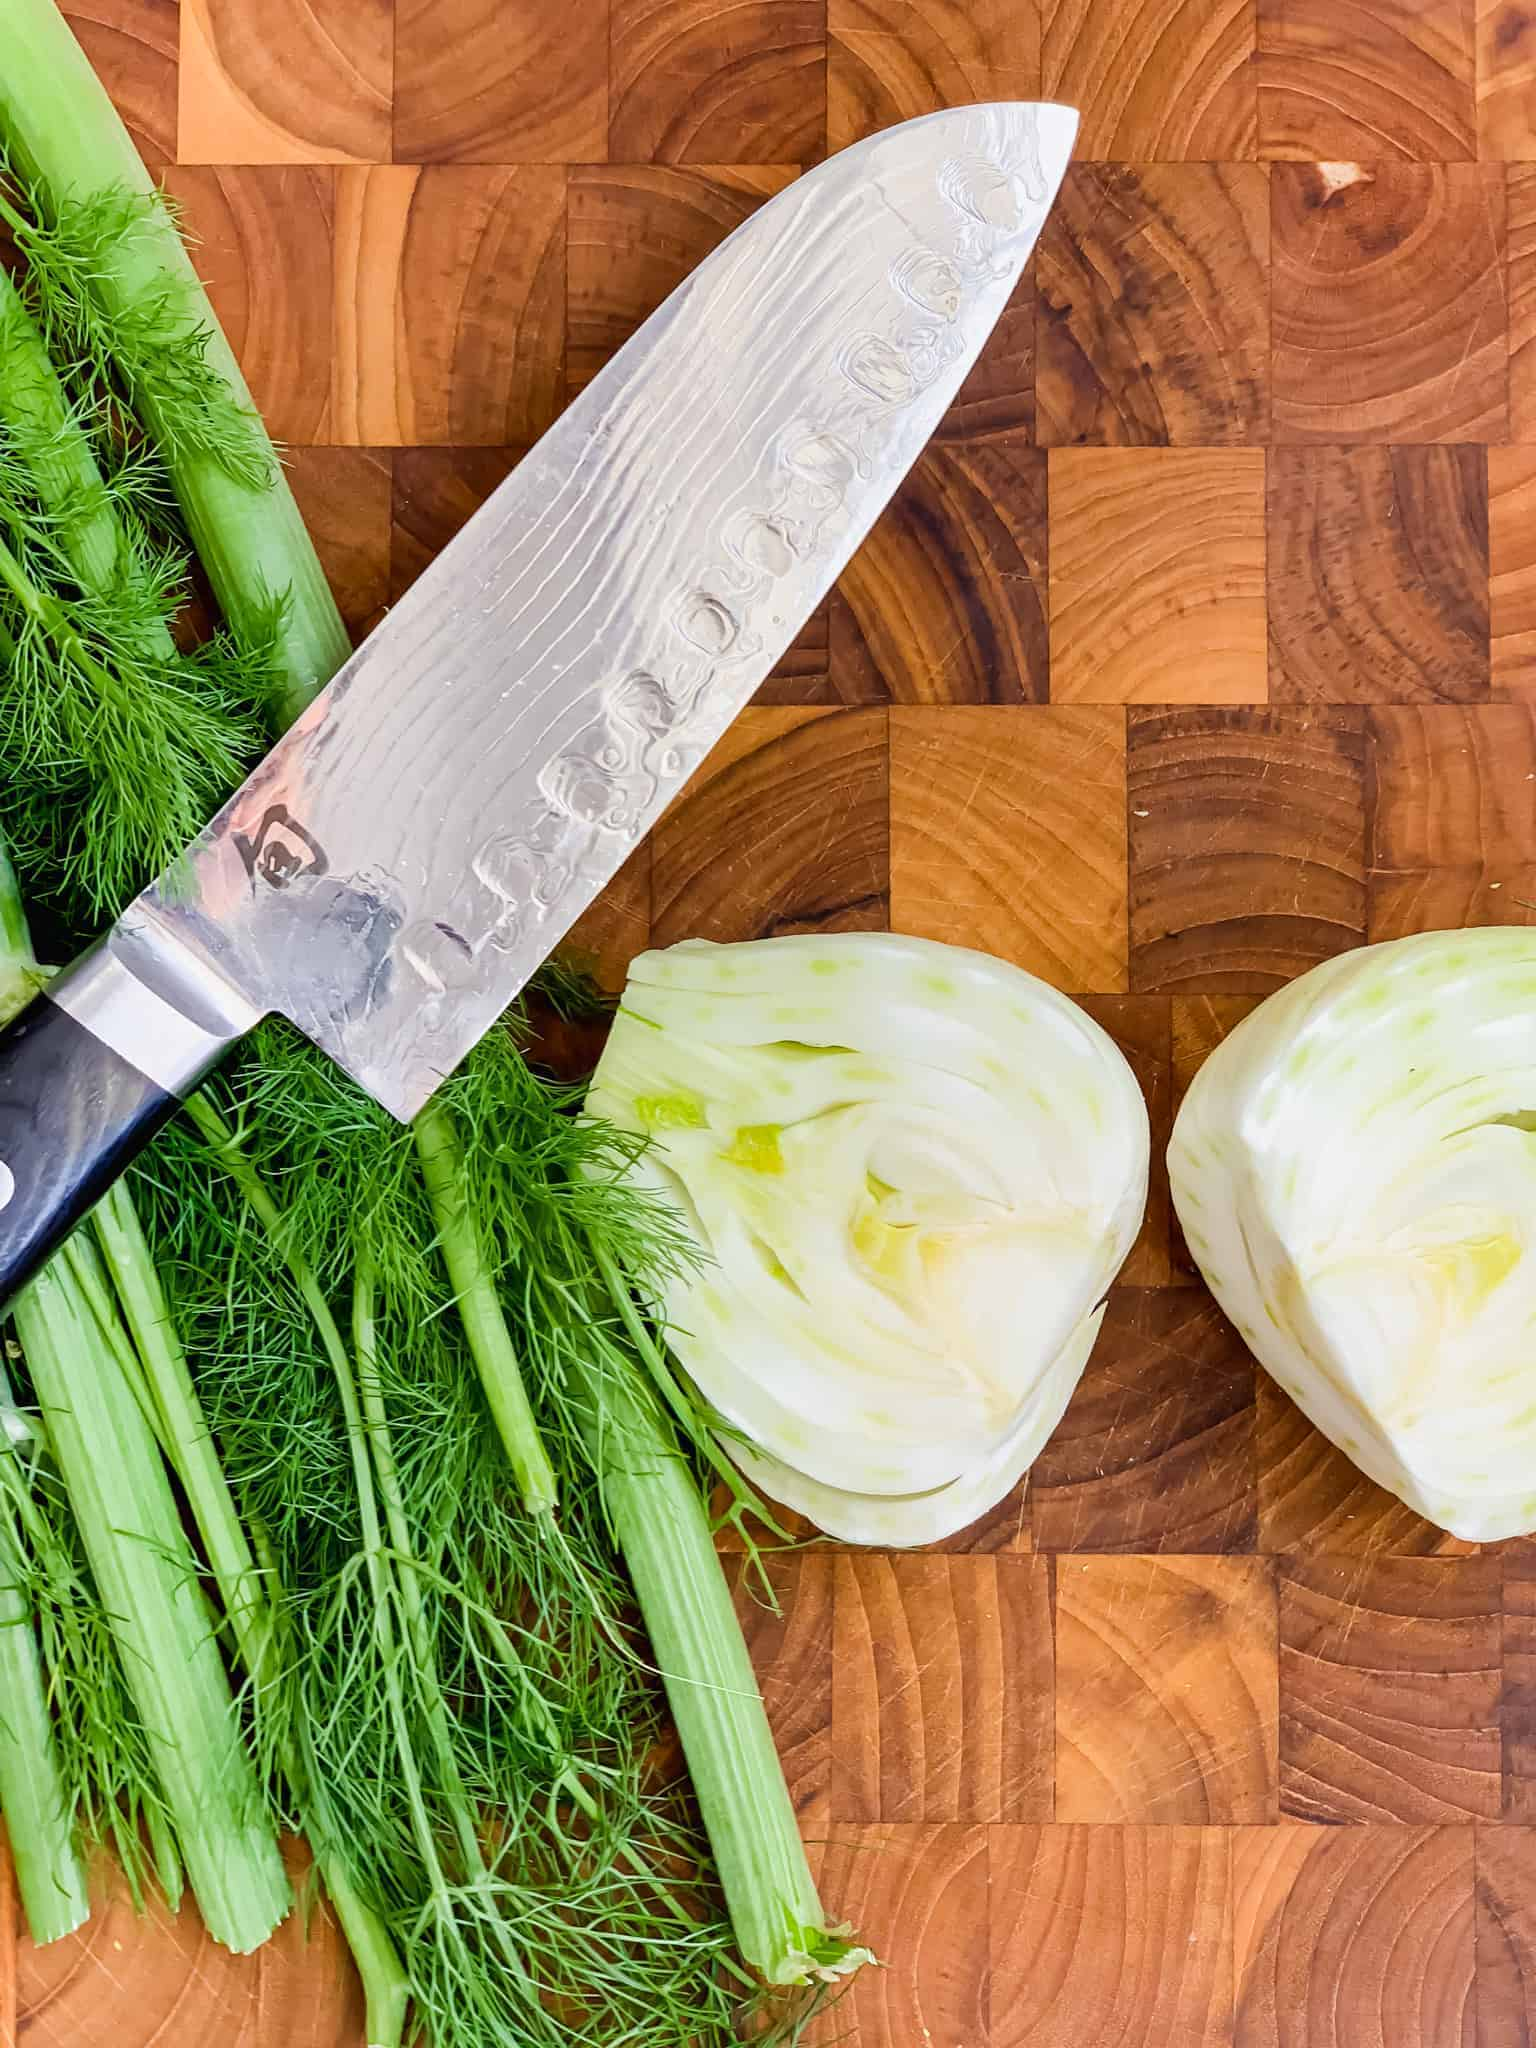 Fennel bulb sliced in half with knife on board